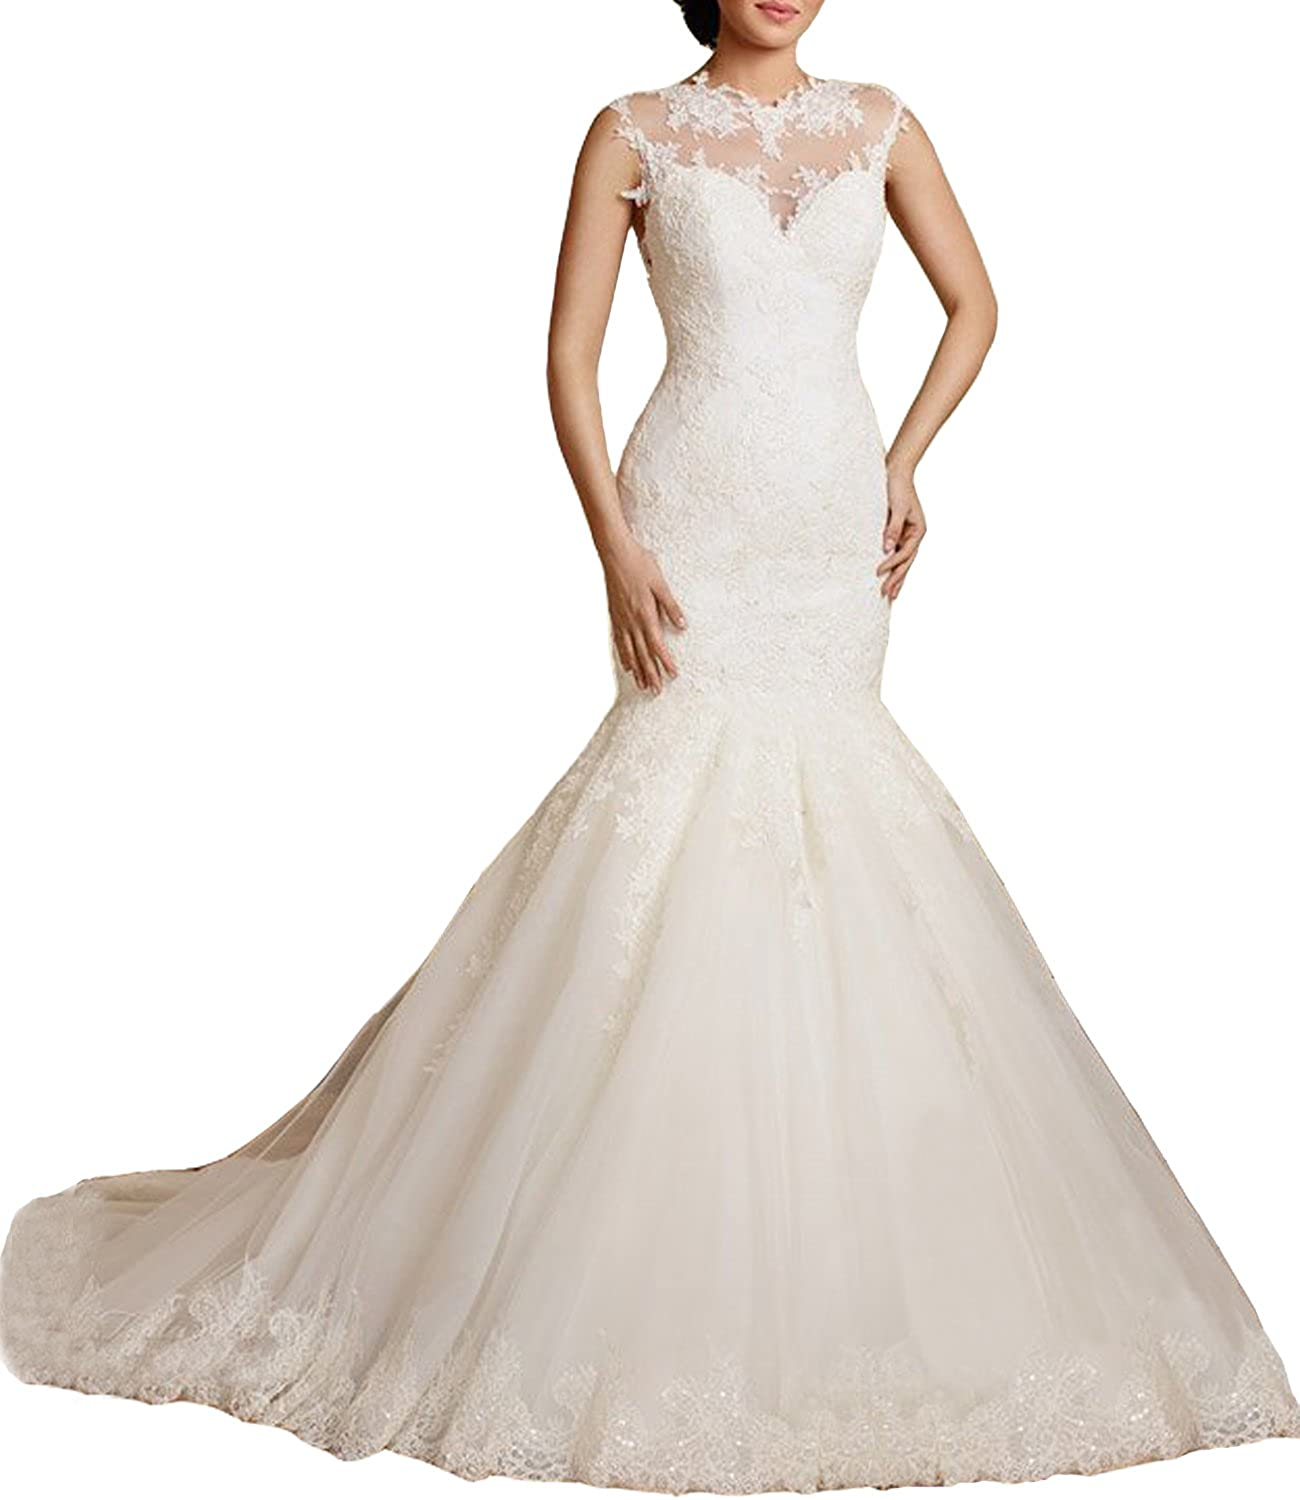 Alanre Illusion Appliques Lace Mermaid Wedding Dress Bride Gown High Keyhole Back at Amazon Womens Clothing store: